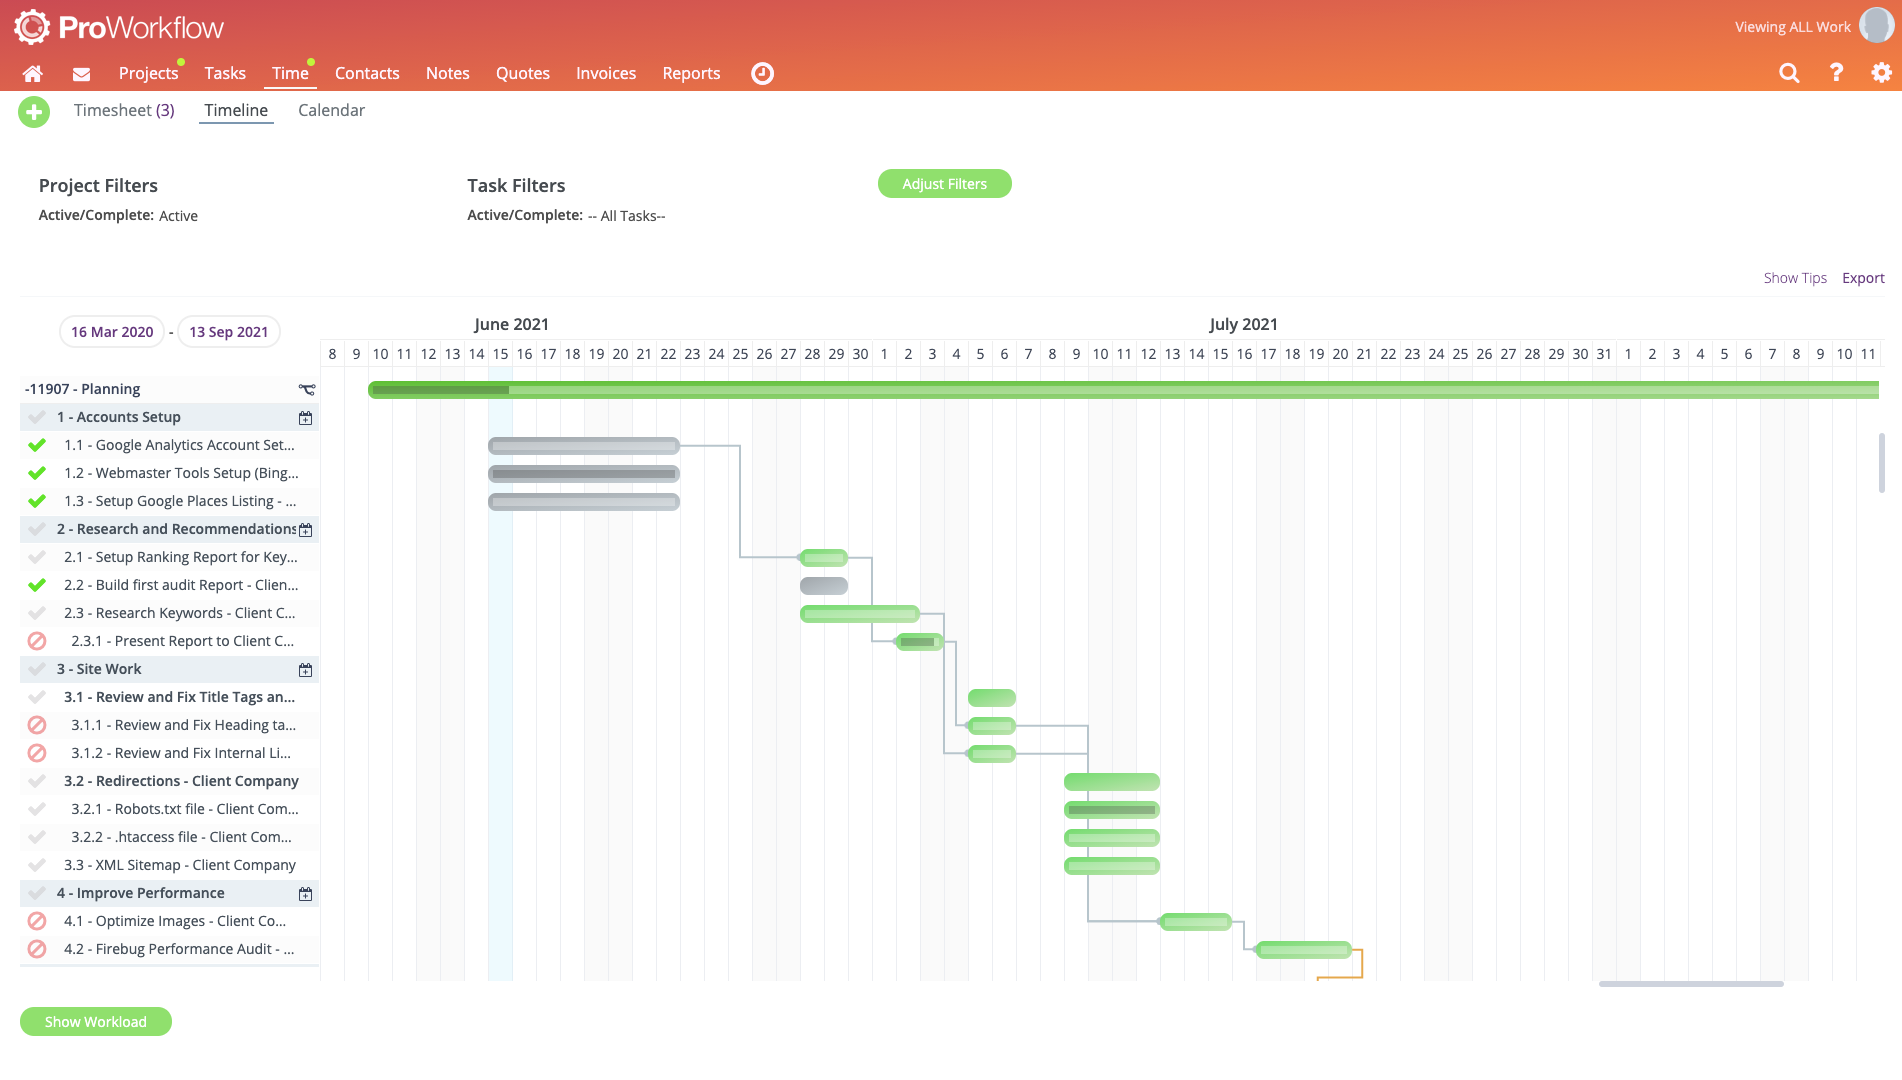 ProWorkflow Software - Gantt Chart - Keep a birds-eye view on Projects and Tasks with an easy-to-use Gantt Chart Timeline. Supercharge your projects with drag & drop features to reschedule work easily.